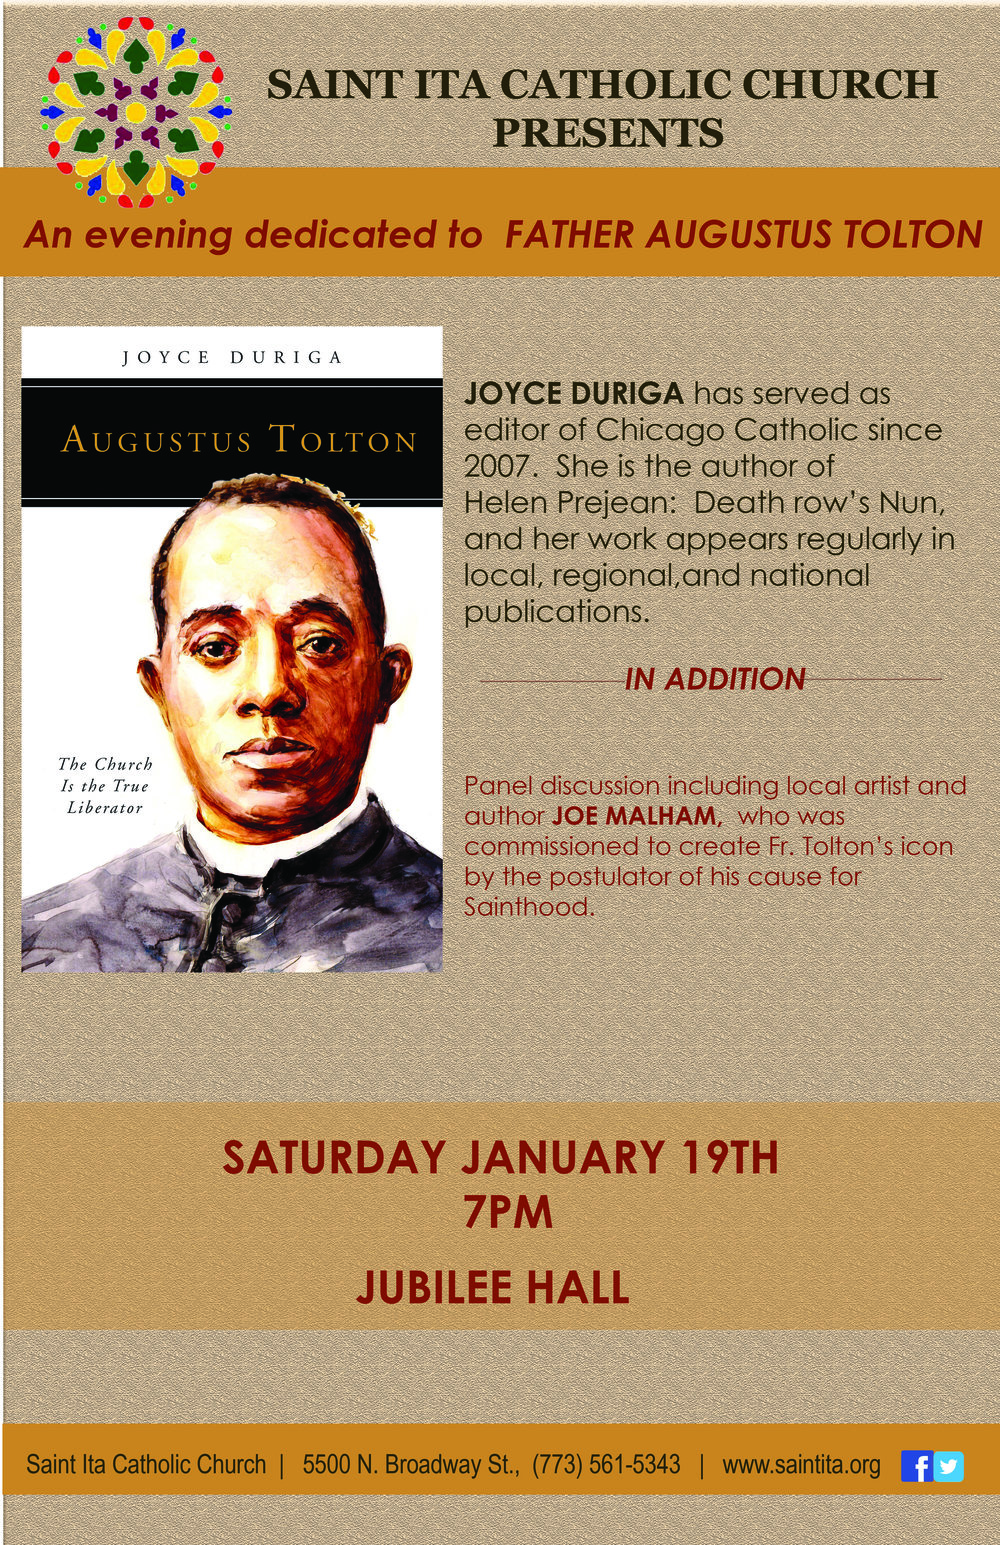 father tolton poster 011919.jpg